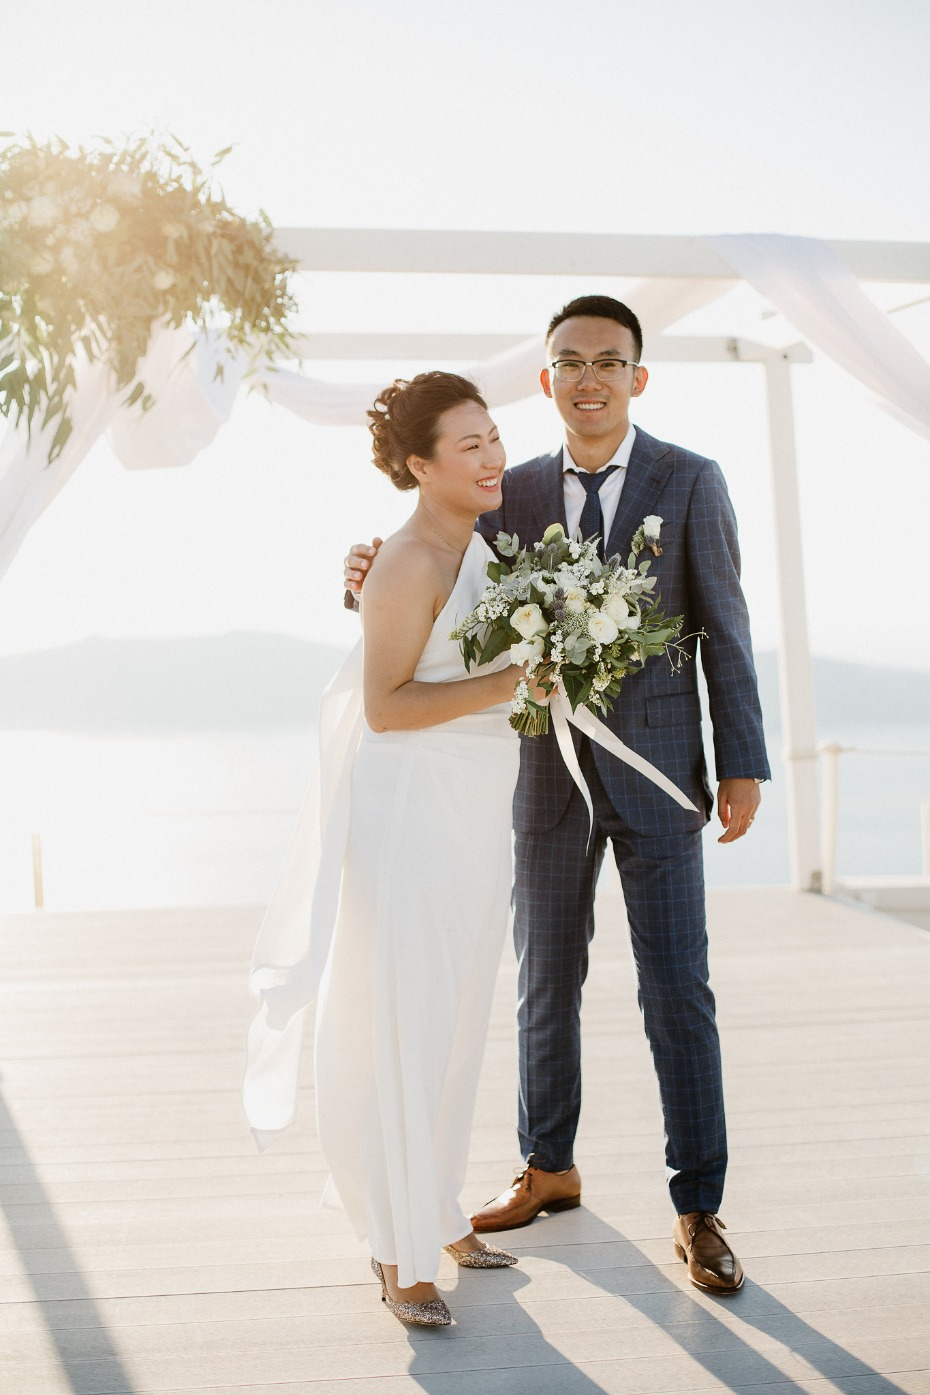 Gorgeous organic modern wedding in Greece